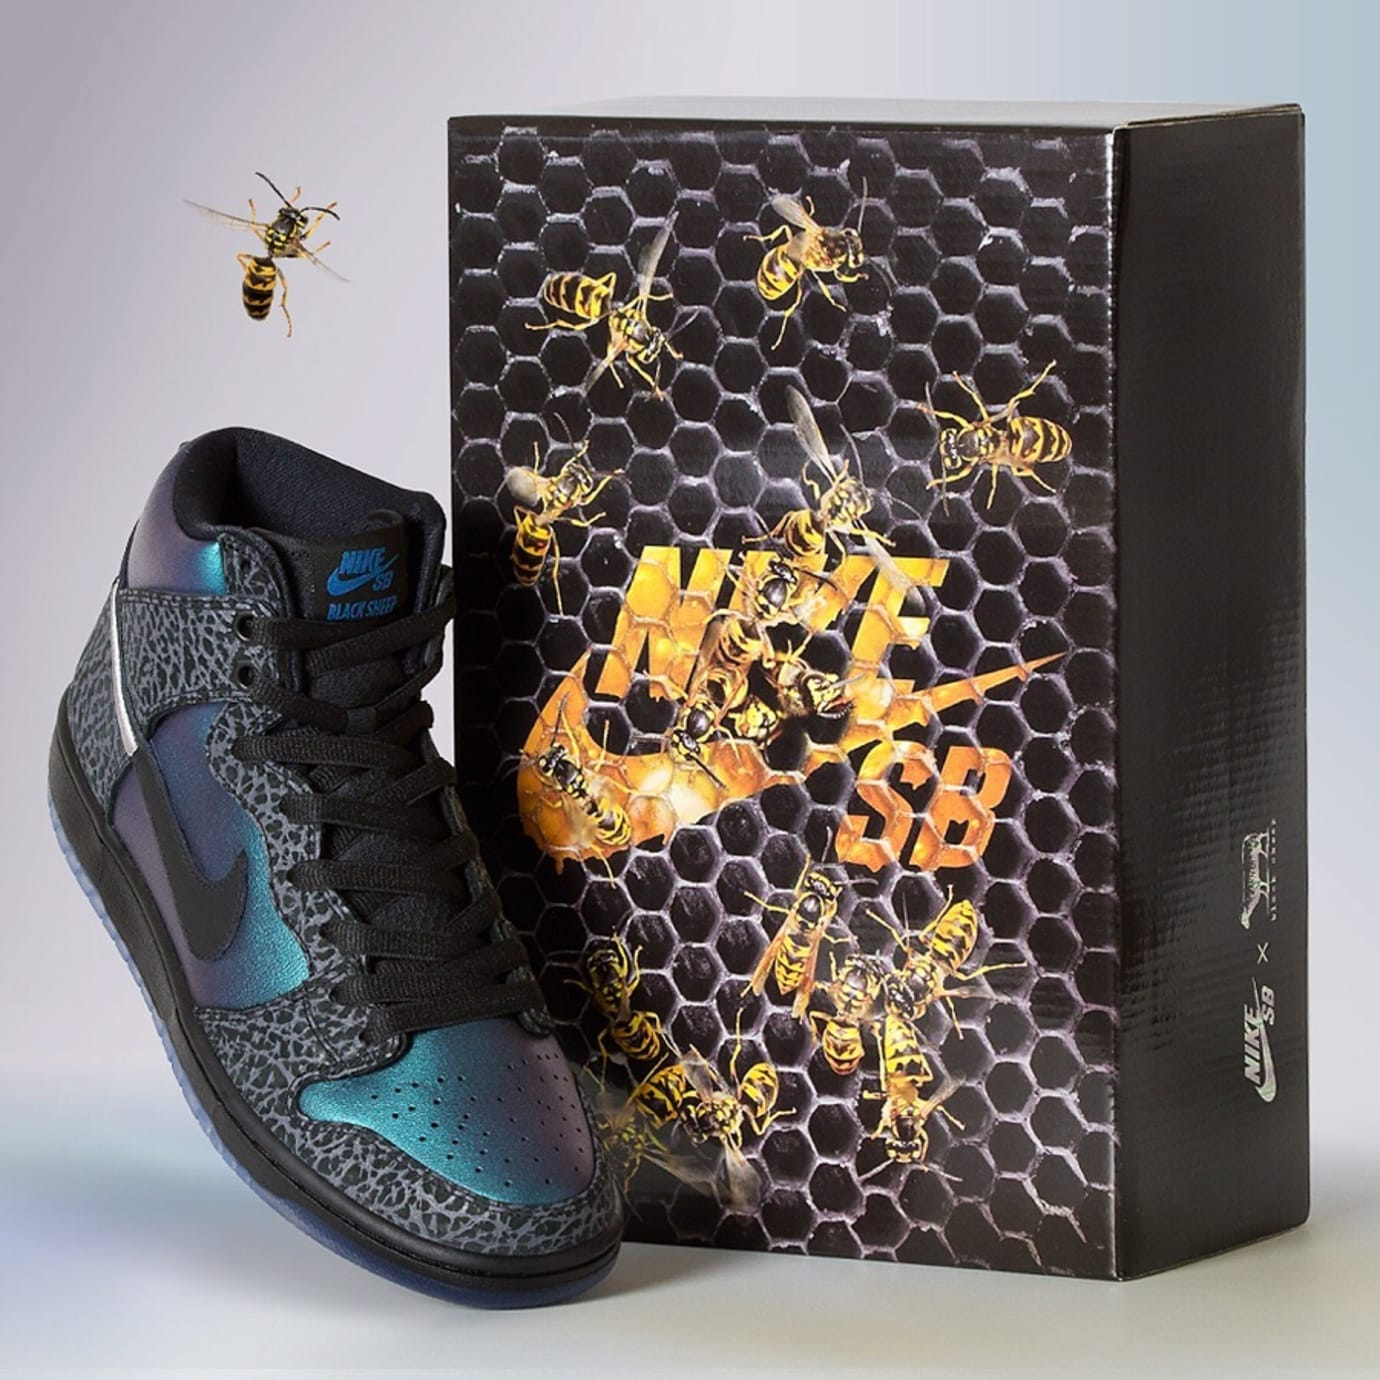 Black Sheep x Nike SB Dunk High 'Black Hornet' (Box 1)